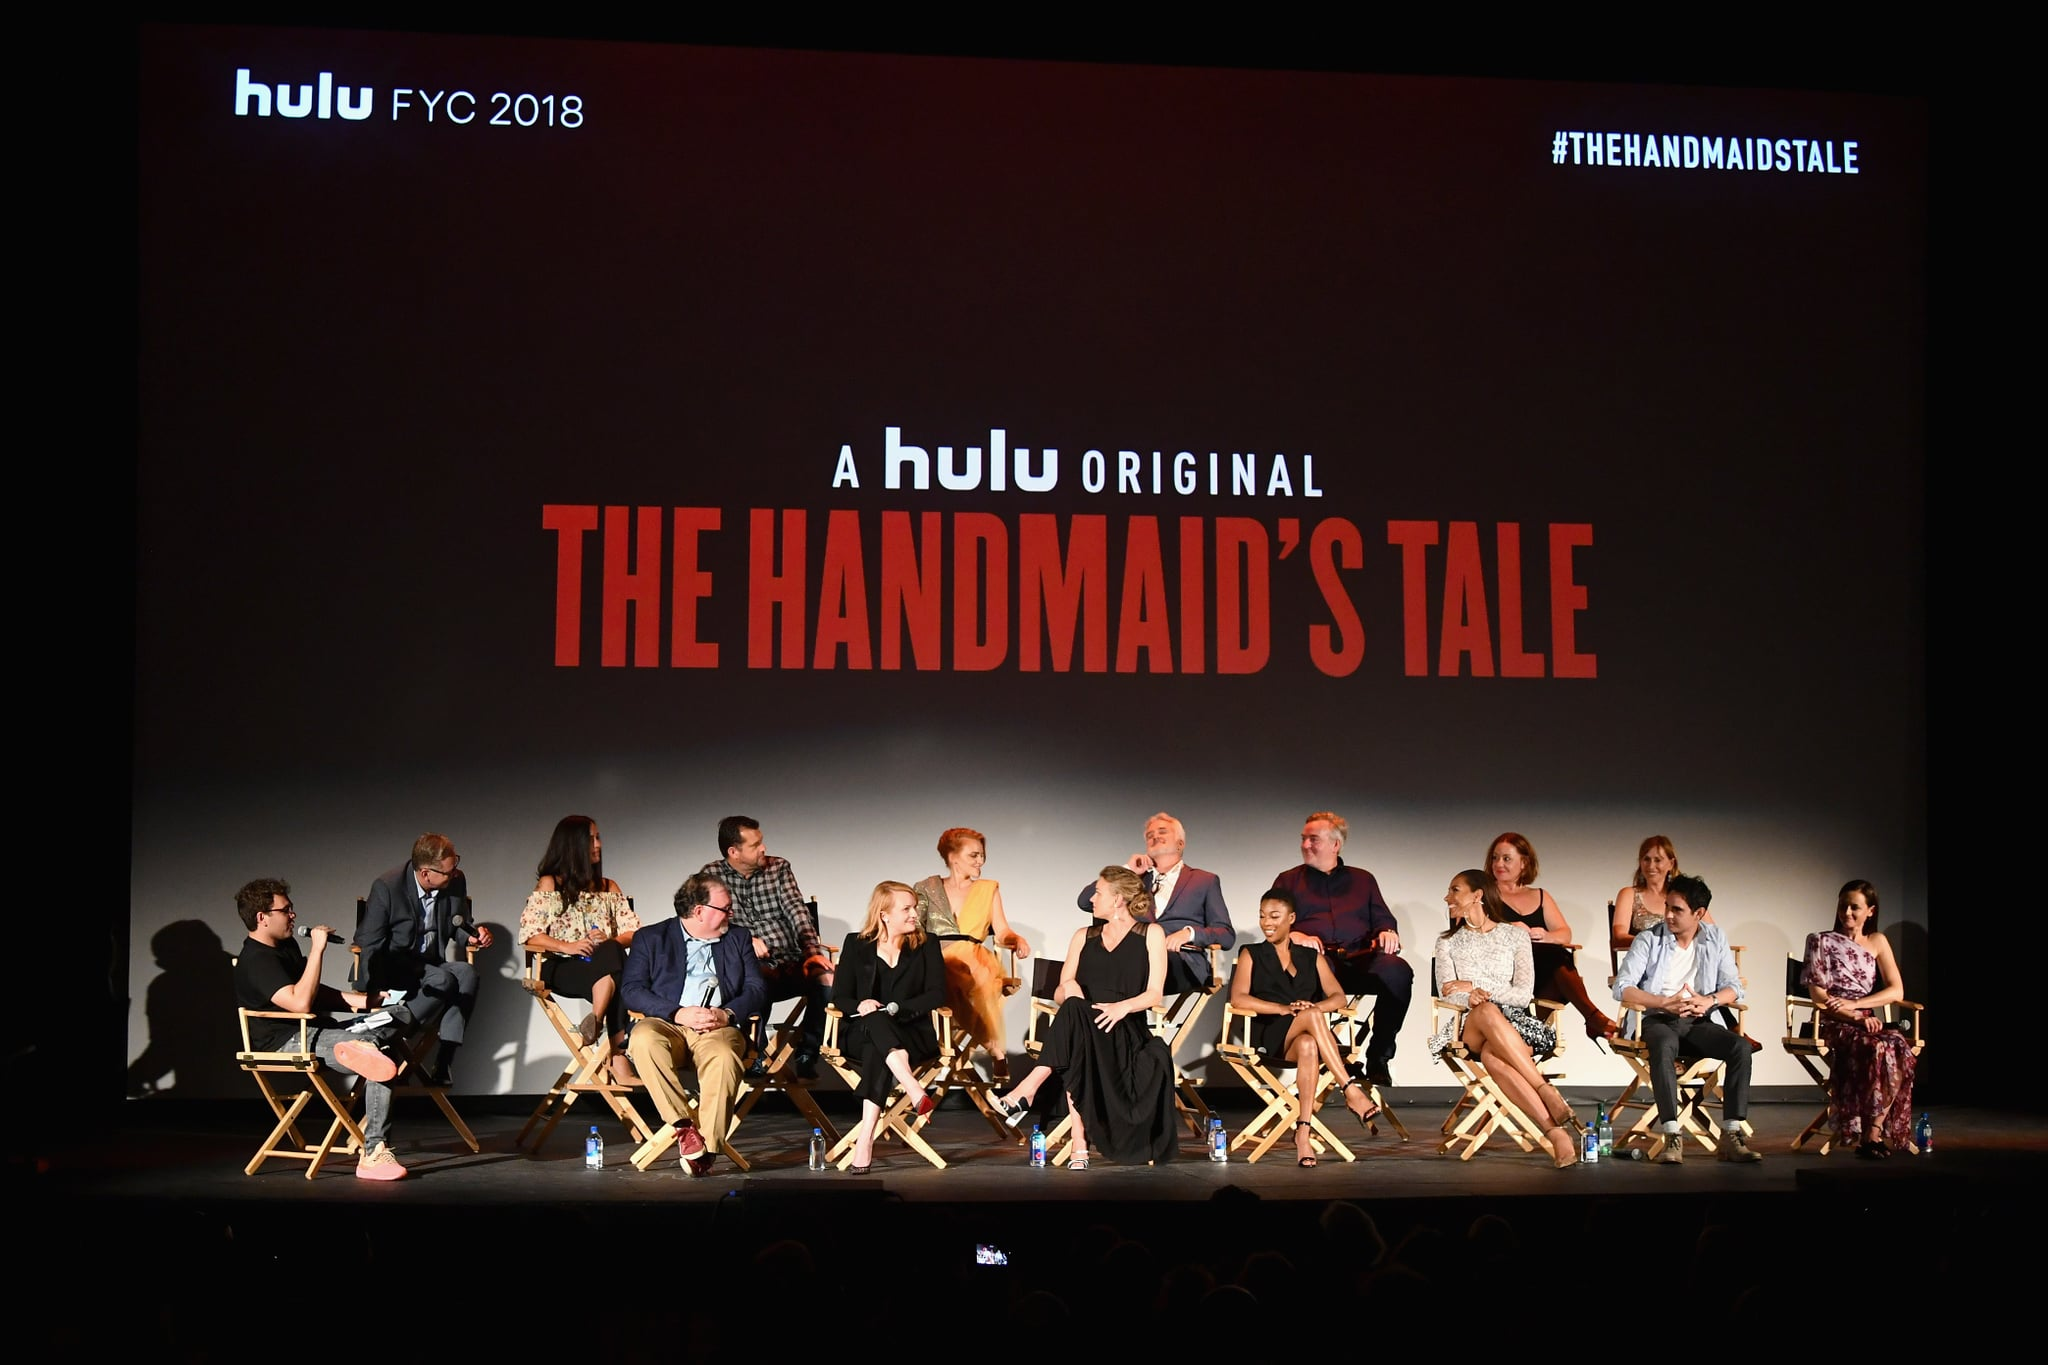 LOS ANGELES, CA - JULY 09:  (L-R Front) Jon Lovett, Bruce Miller, Elisabeth Moss, Yvonne Strahovski, Samira Wiley, Max Minghella and Alexis Bledel, (L-R Back) Warren Littlefield, Elisabeth Williams, Colin Watkinson, Madeline Brewer, Bradley Whitford, Mike Barker Sharon Bialy and Sherry Thomas attend